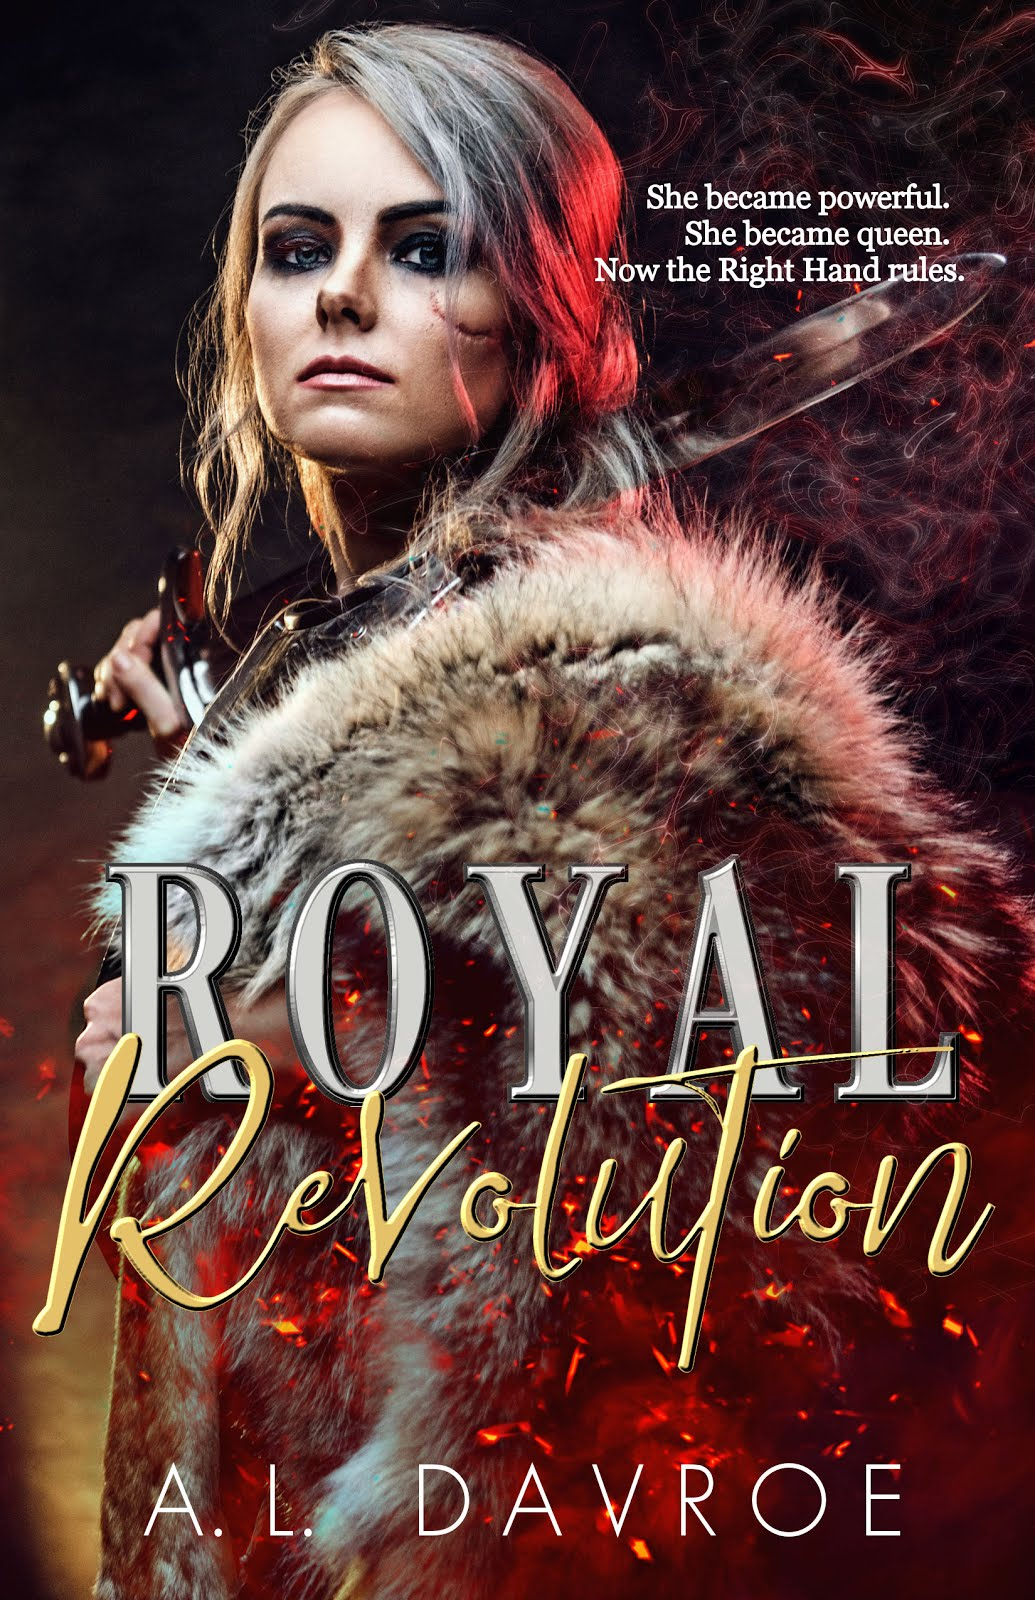 Buy Royal Revolution